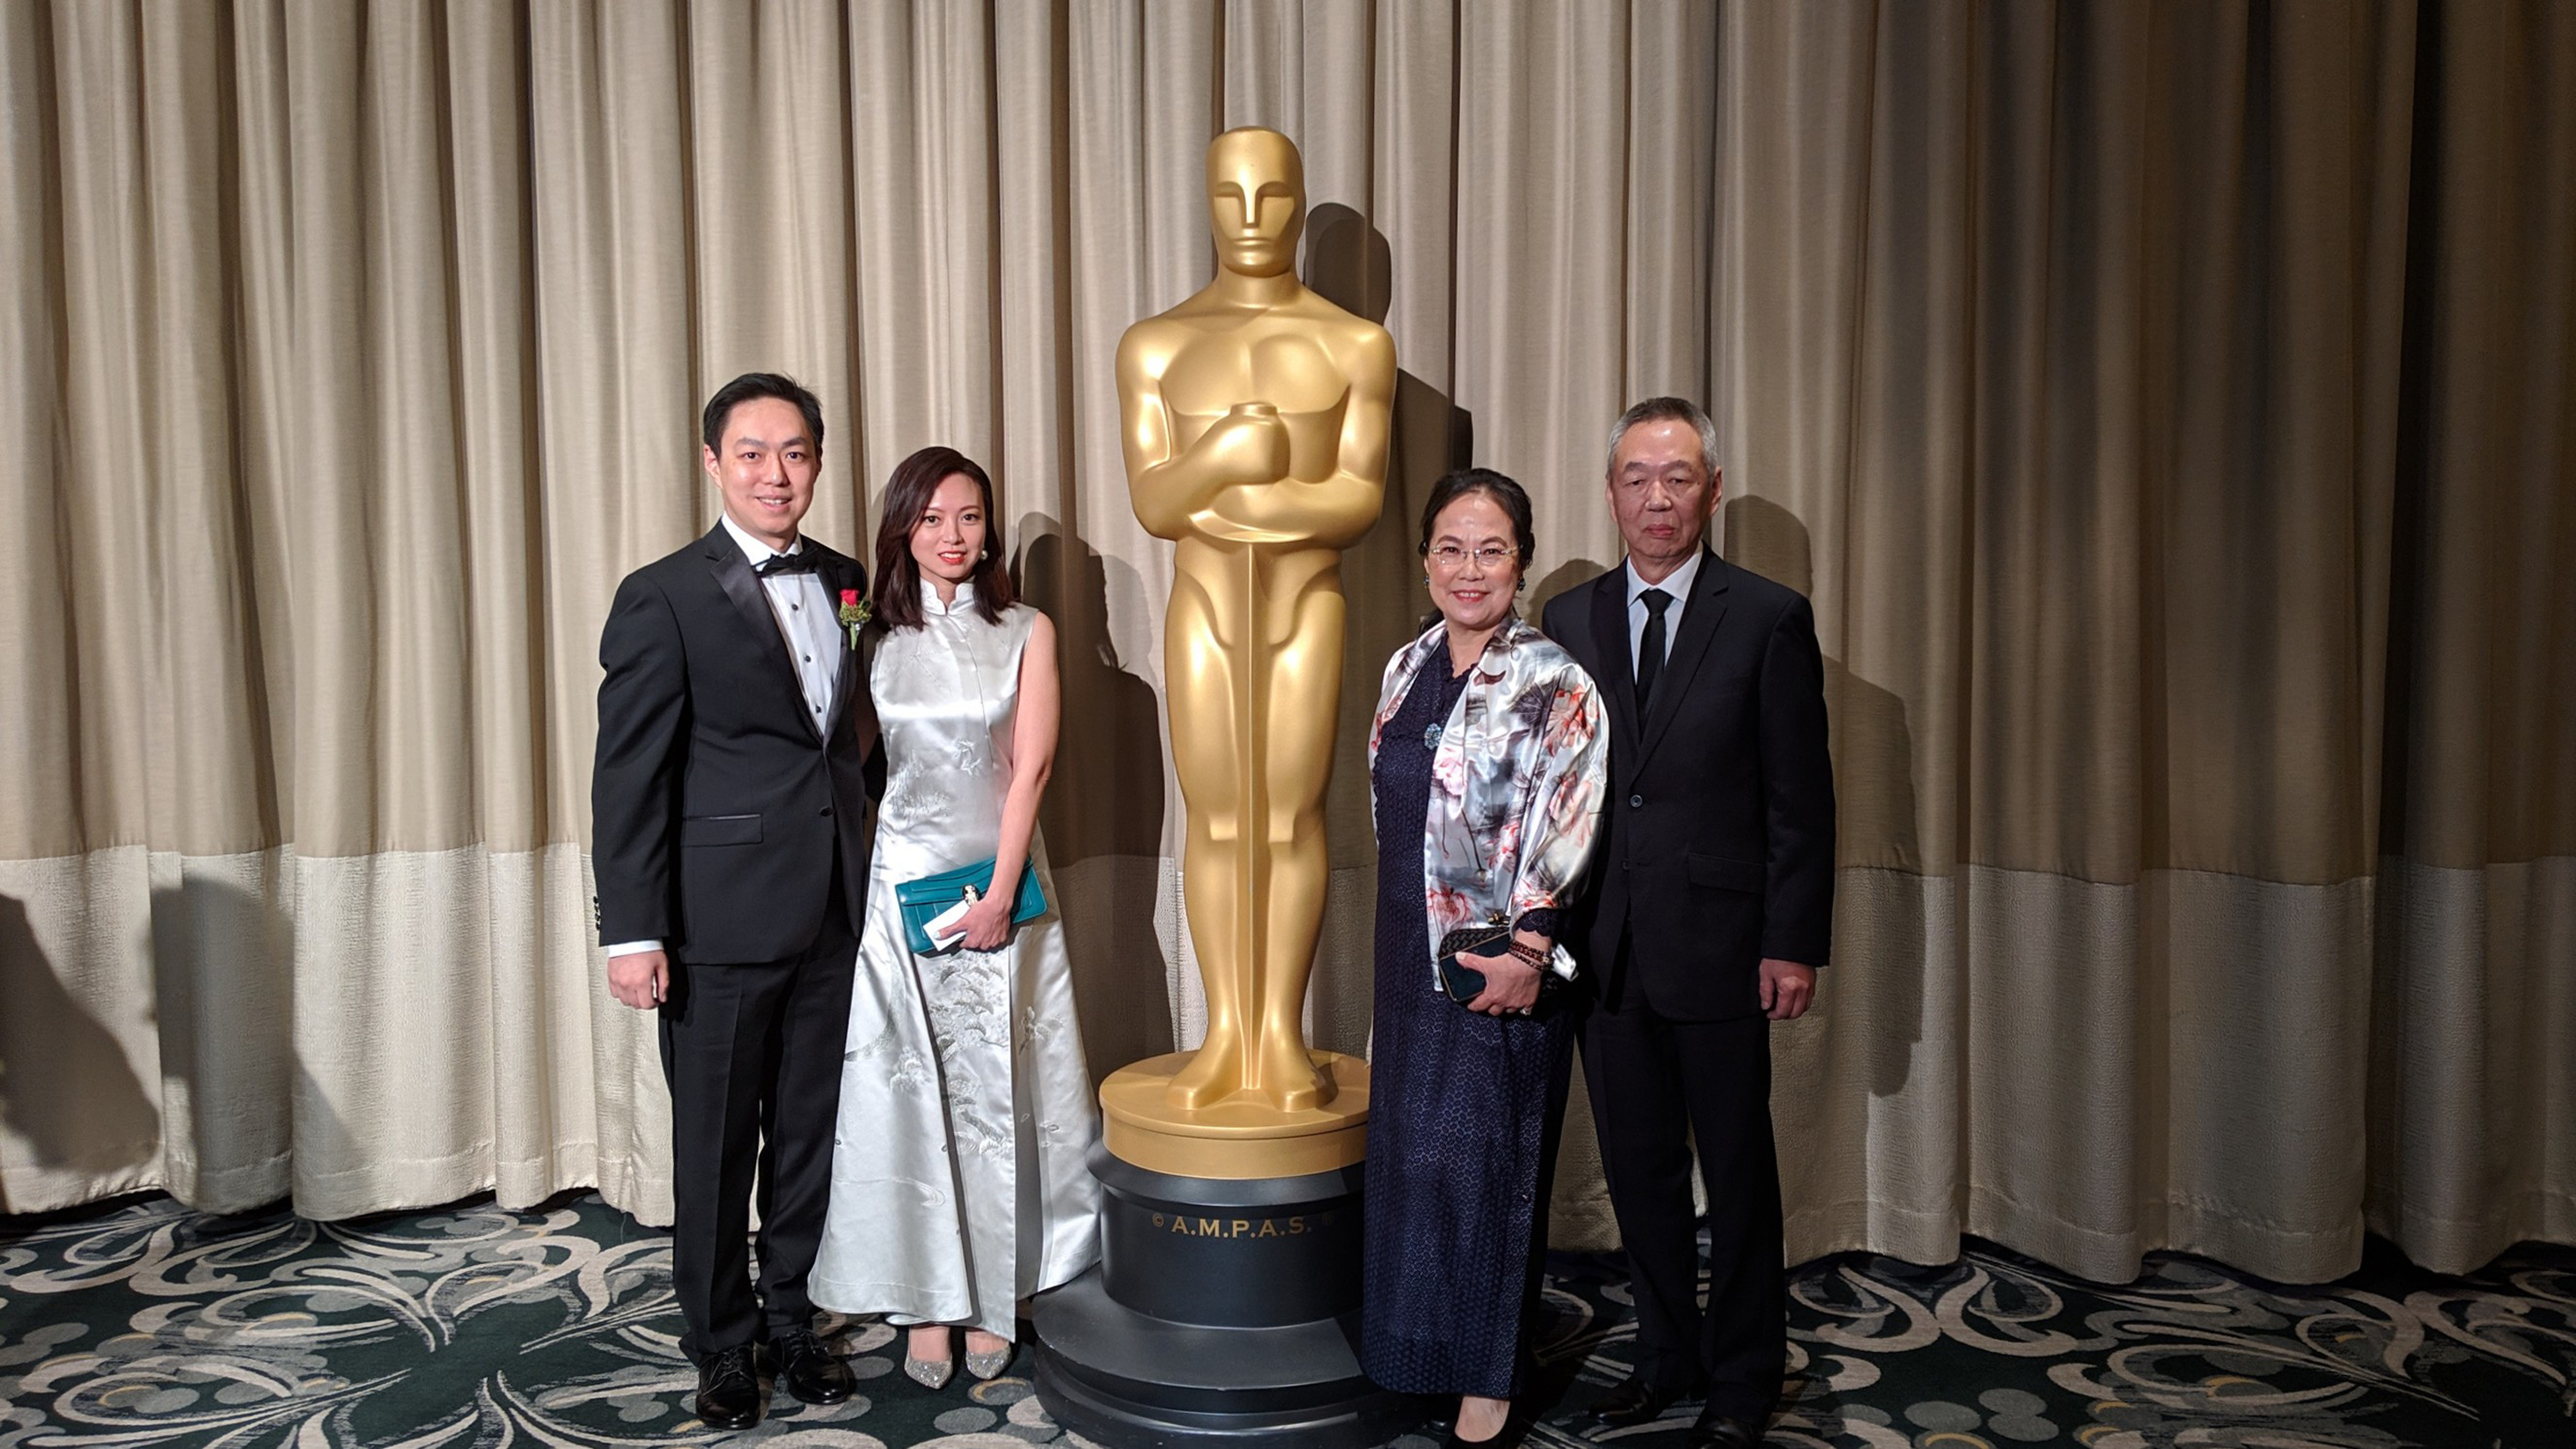 Taiwan engineer cited for technical achievement by the Oscars